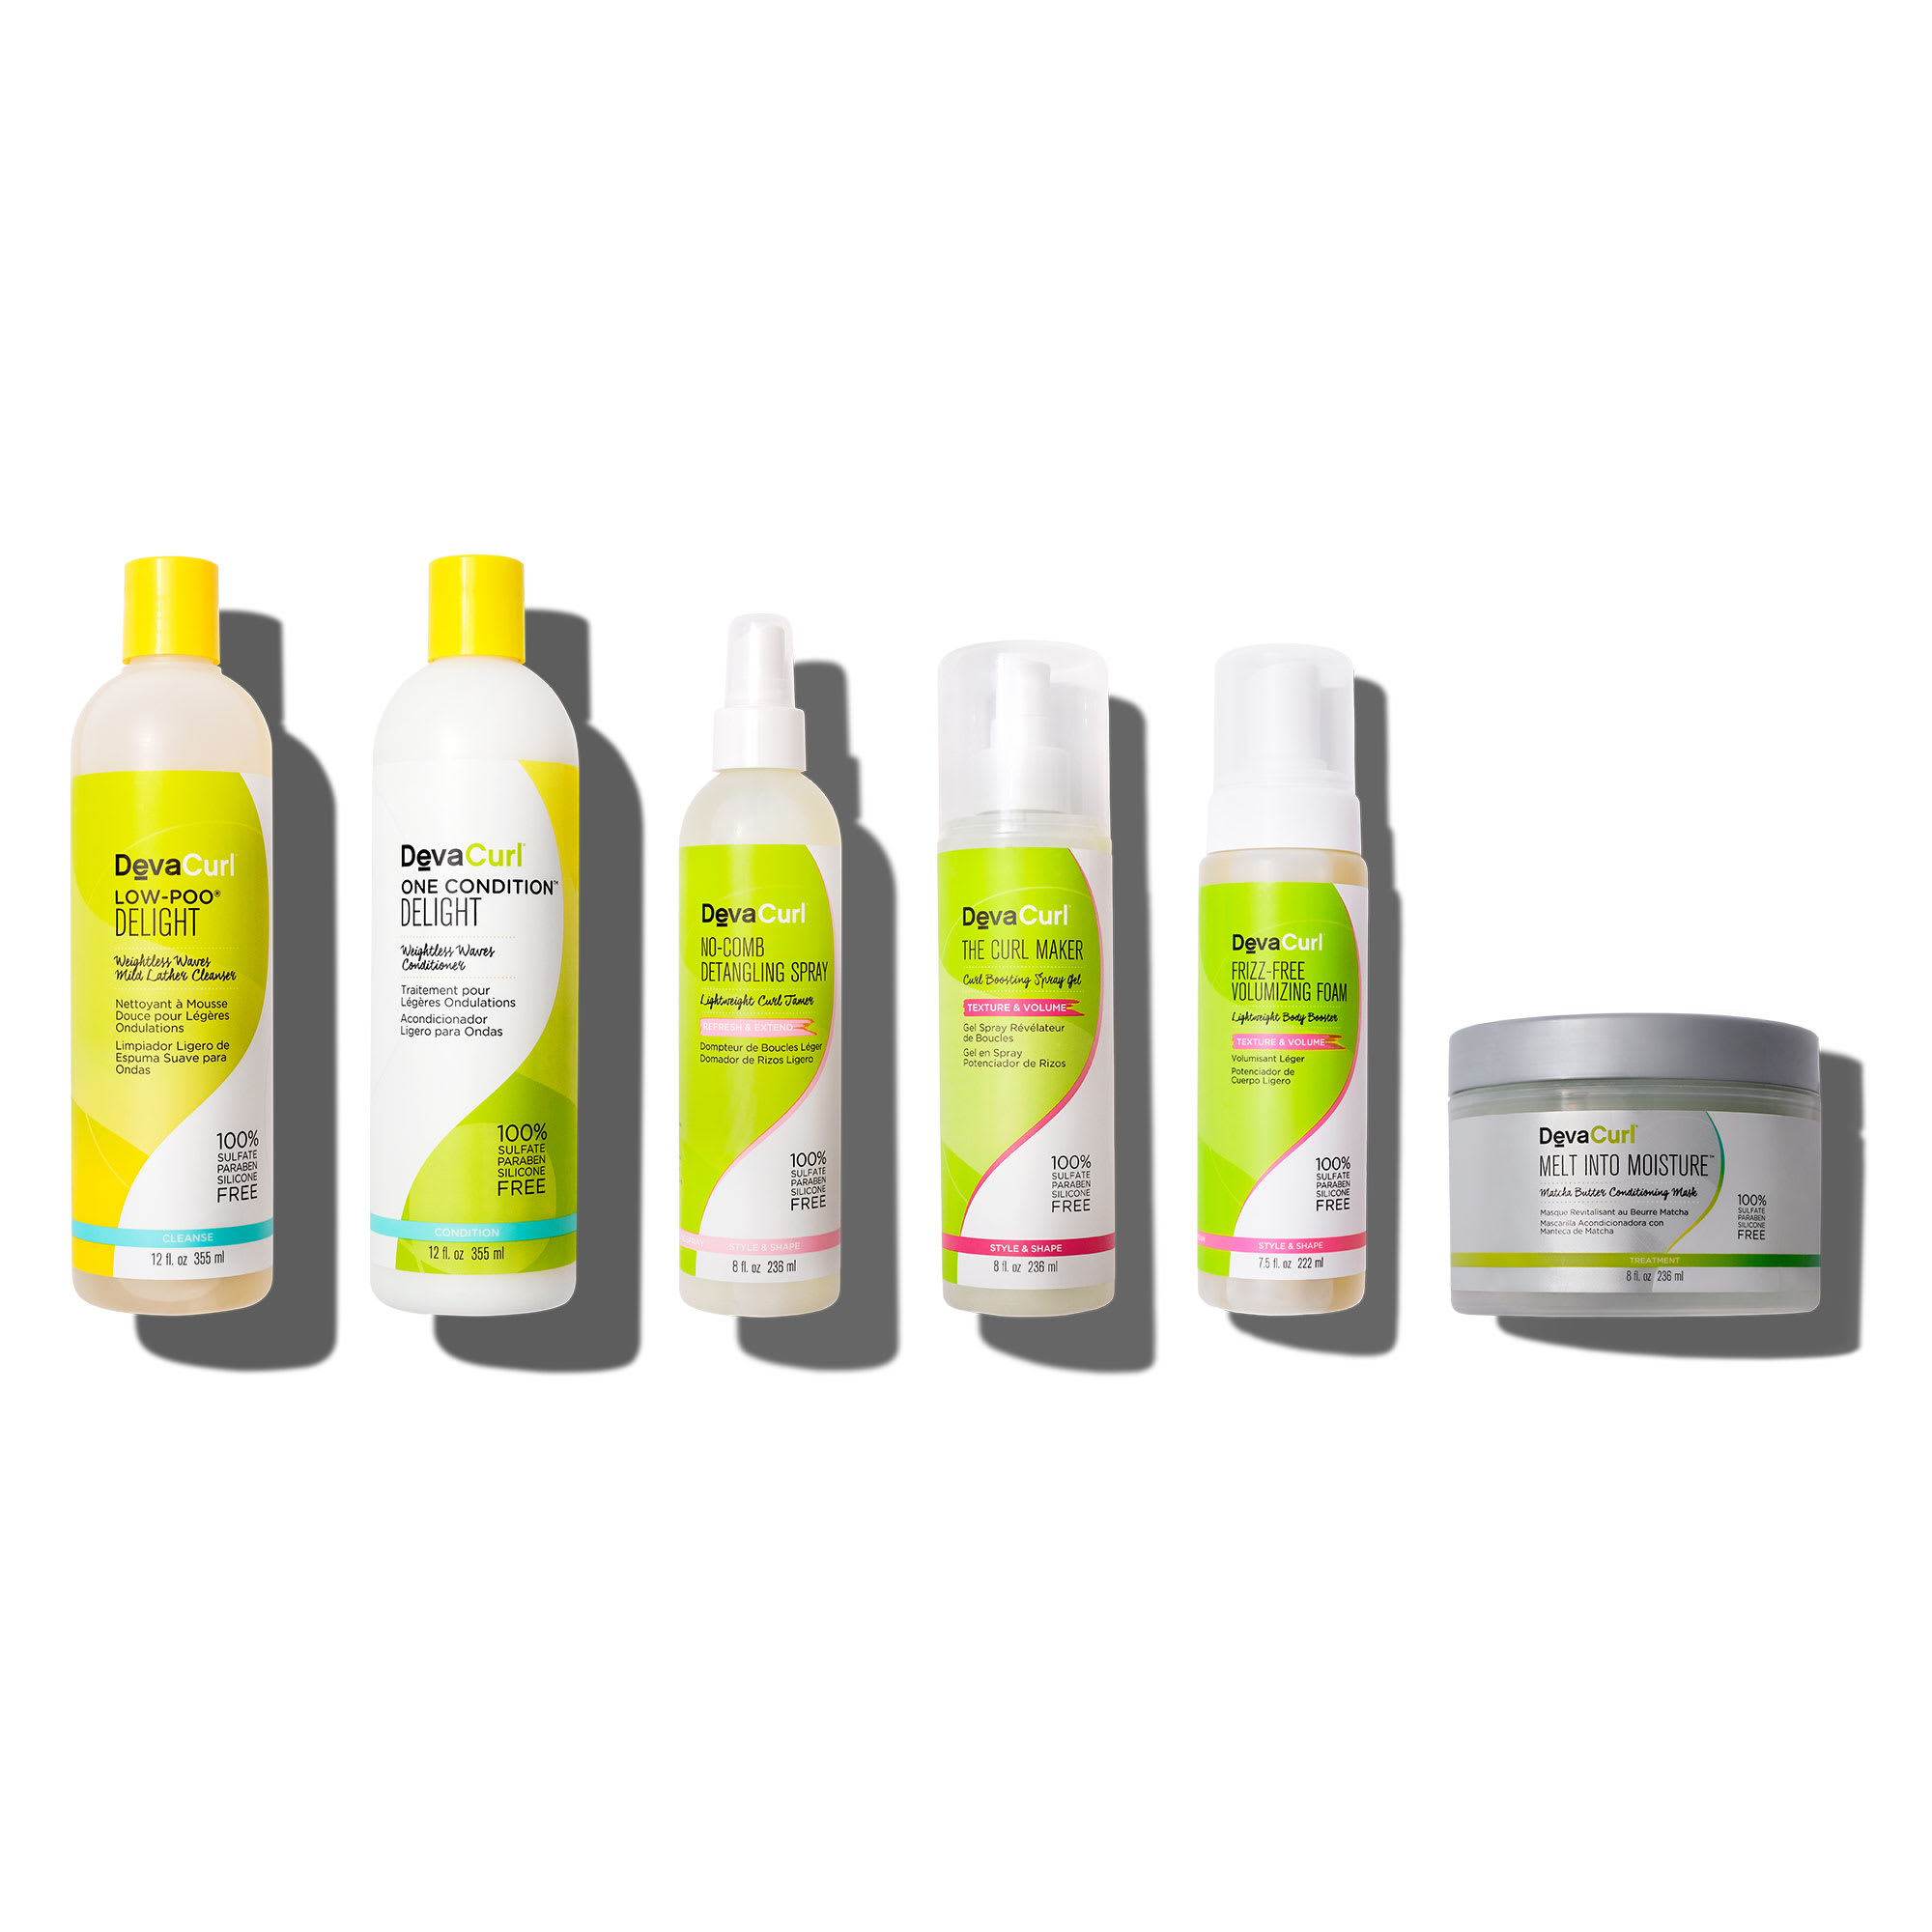 Delight cleanser and conditioner, No-Comb Detangling Spray, The Curl Maker, Frizz-Free Volumizing Foam and Melt Into Moisture bottles.